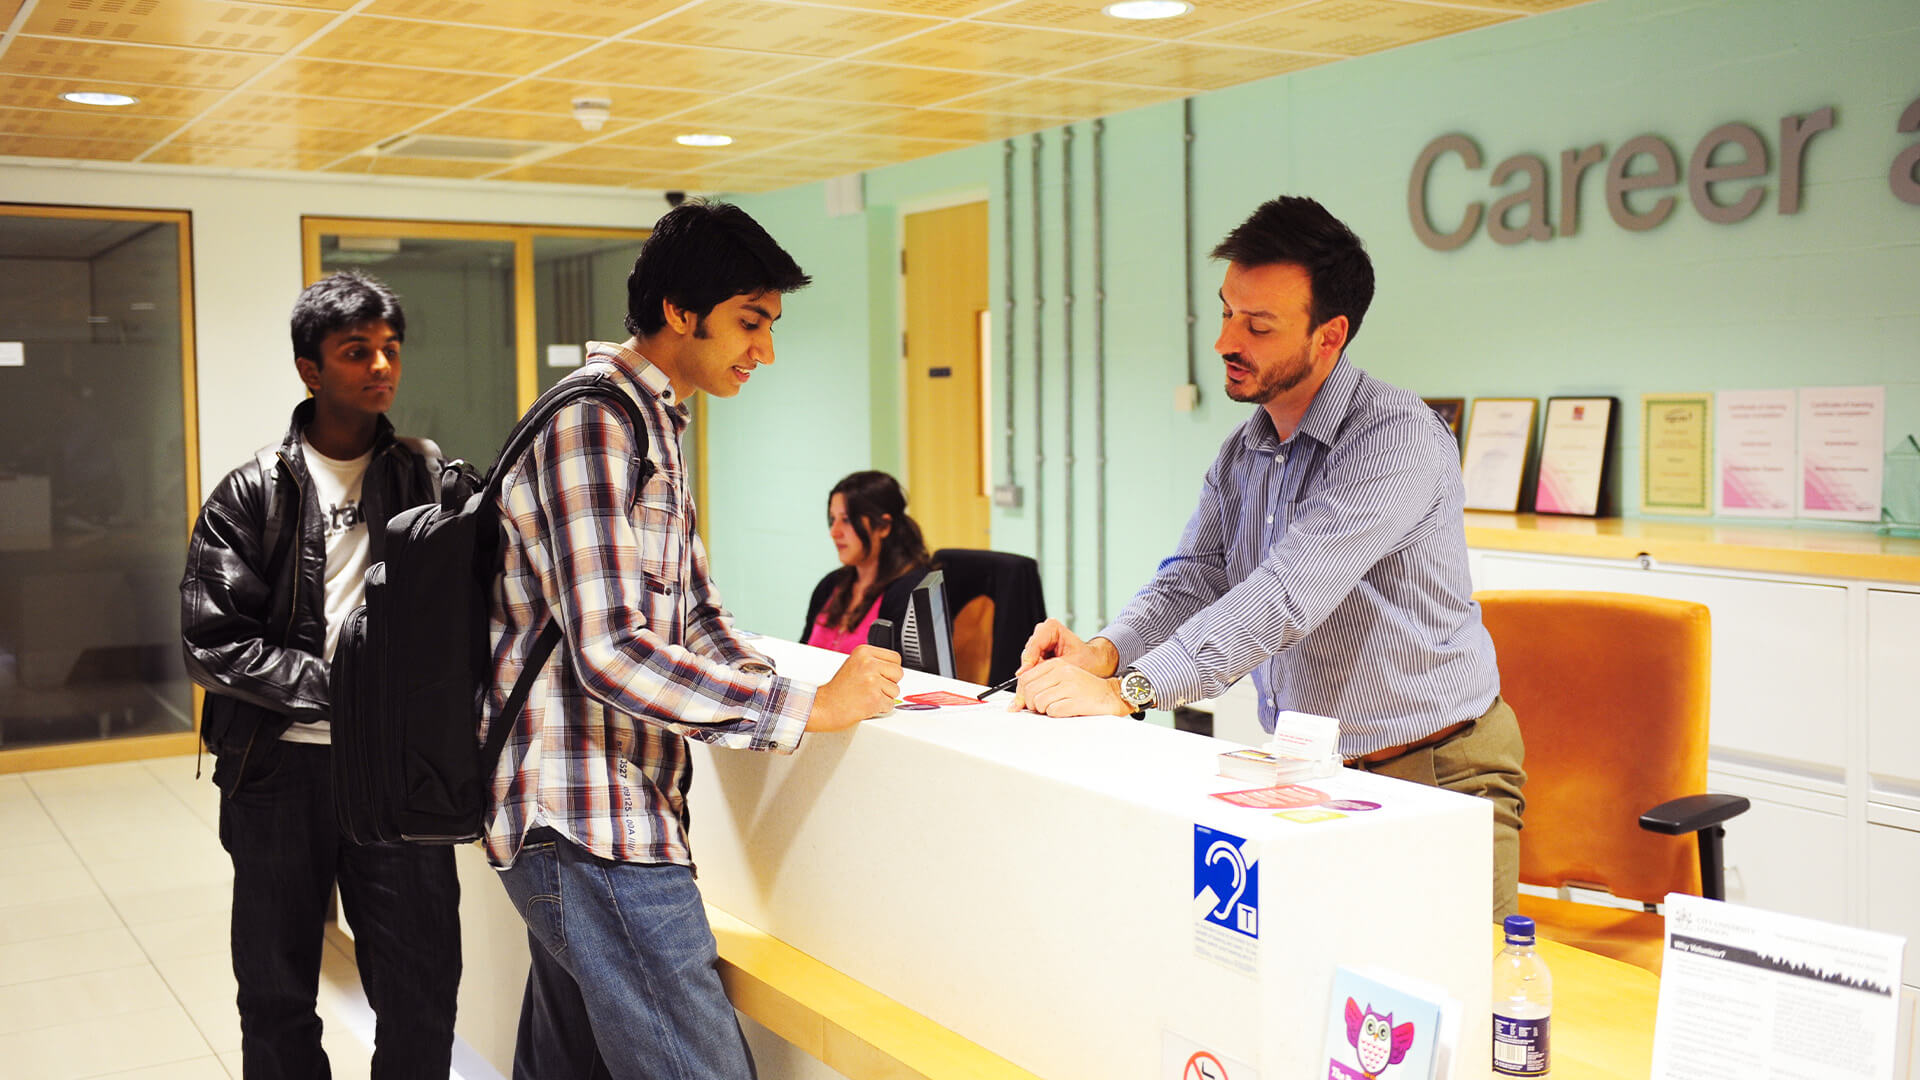 International student talking to a memeber of staff at the Student Hub Careers Service at City, University of London